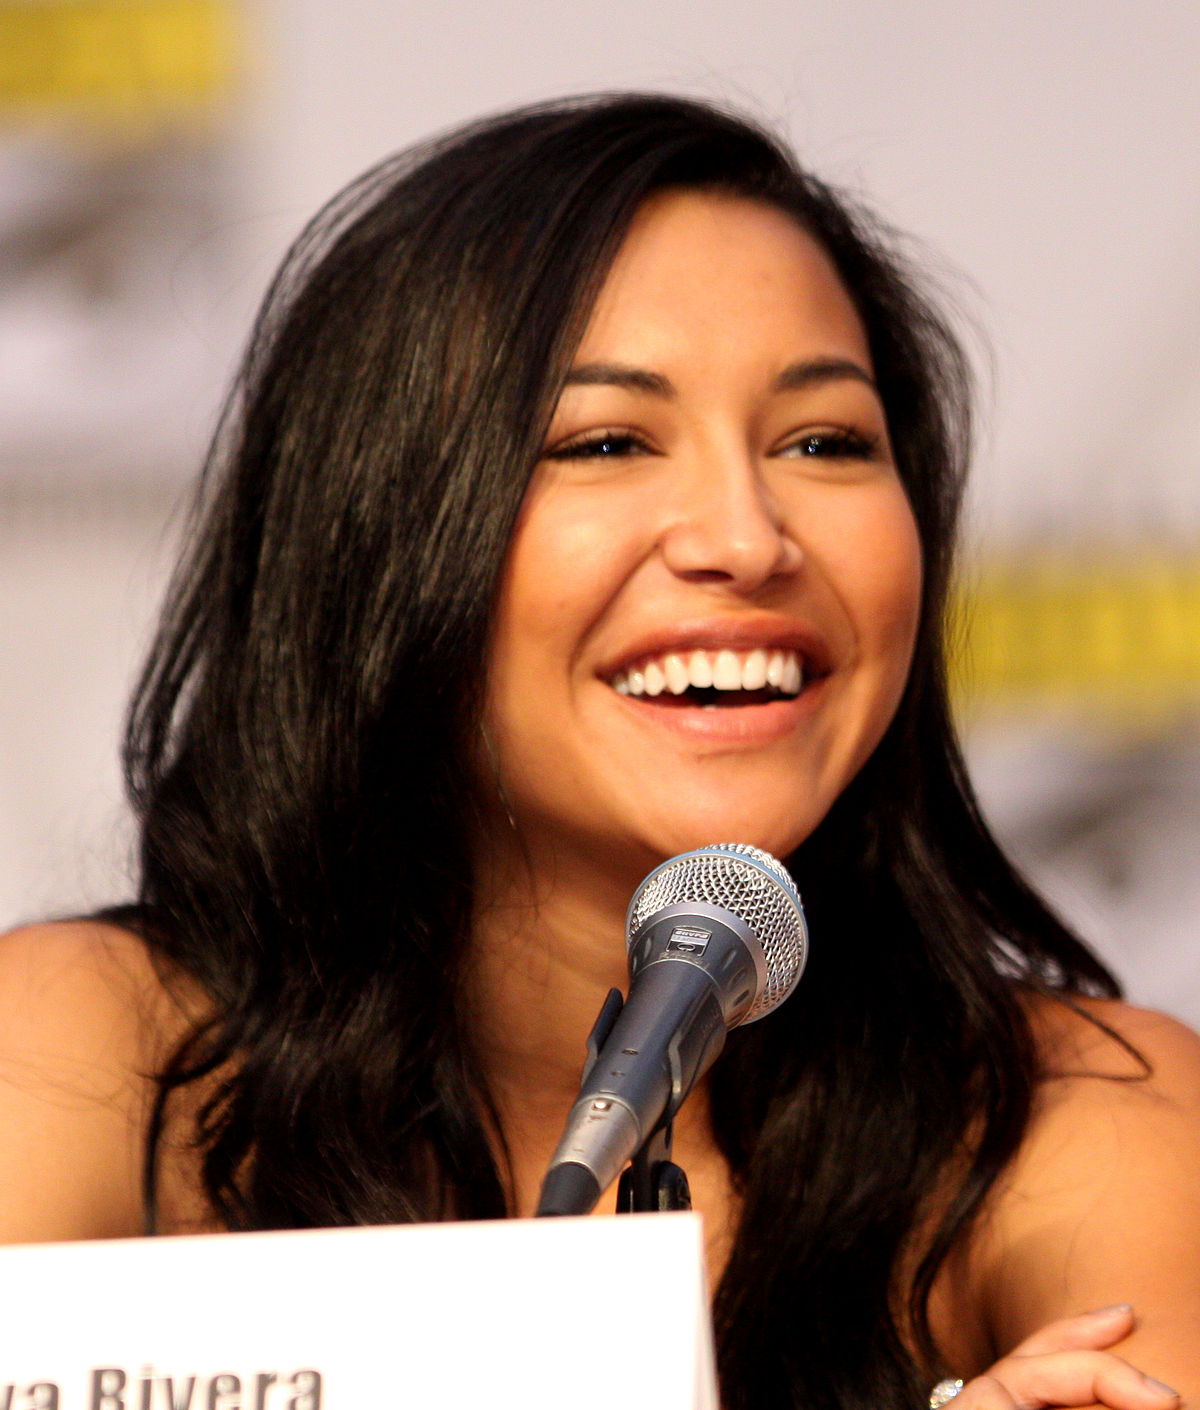 https://upload.wikimedia.org/wikipedia/commons/thumb/8/83/Naya_Rivera_by_Gage_Skidmore.jpg/1200px-Naya_Rivera_by_Gage_Skidmore.jpg